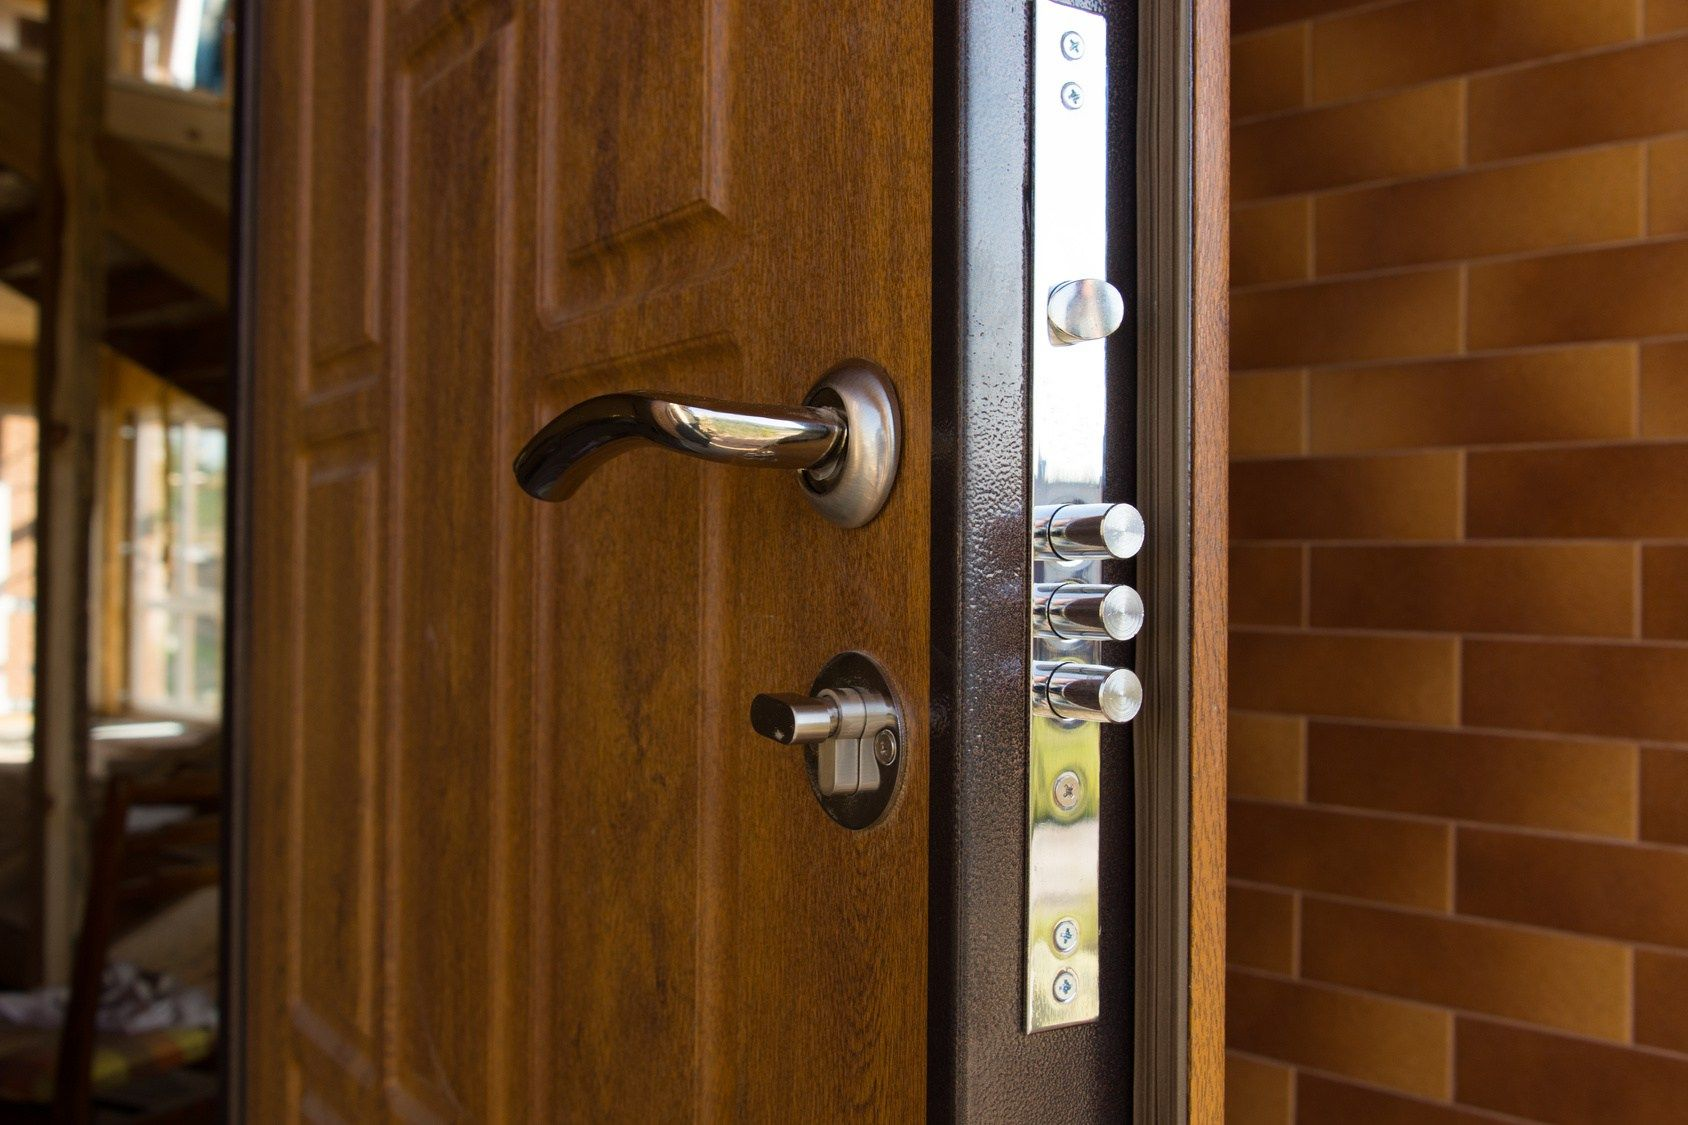 Know About The Security Doors Best Home Guide To Security Front Door Security Security Door Front Door Locks